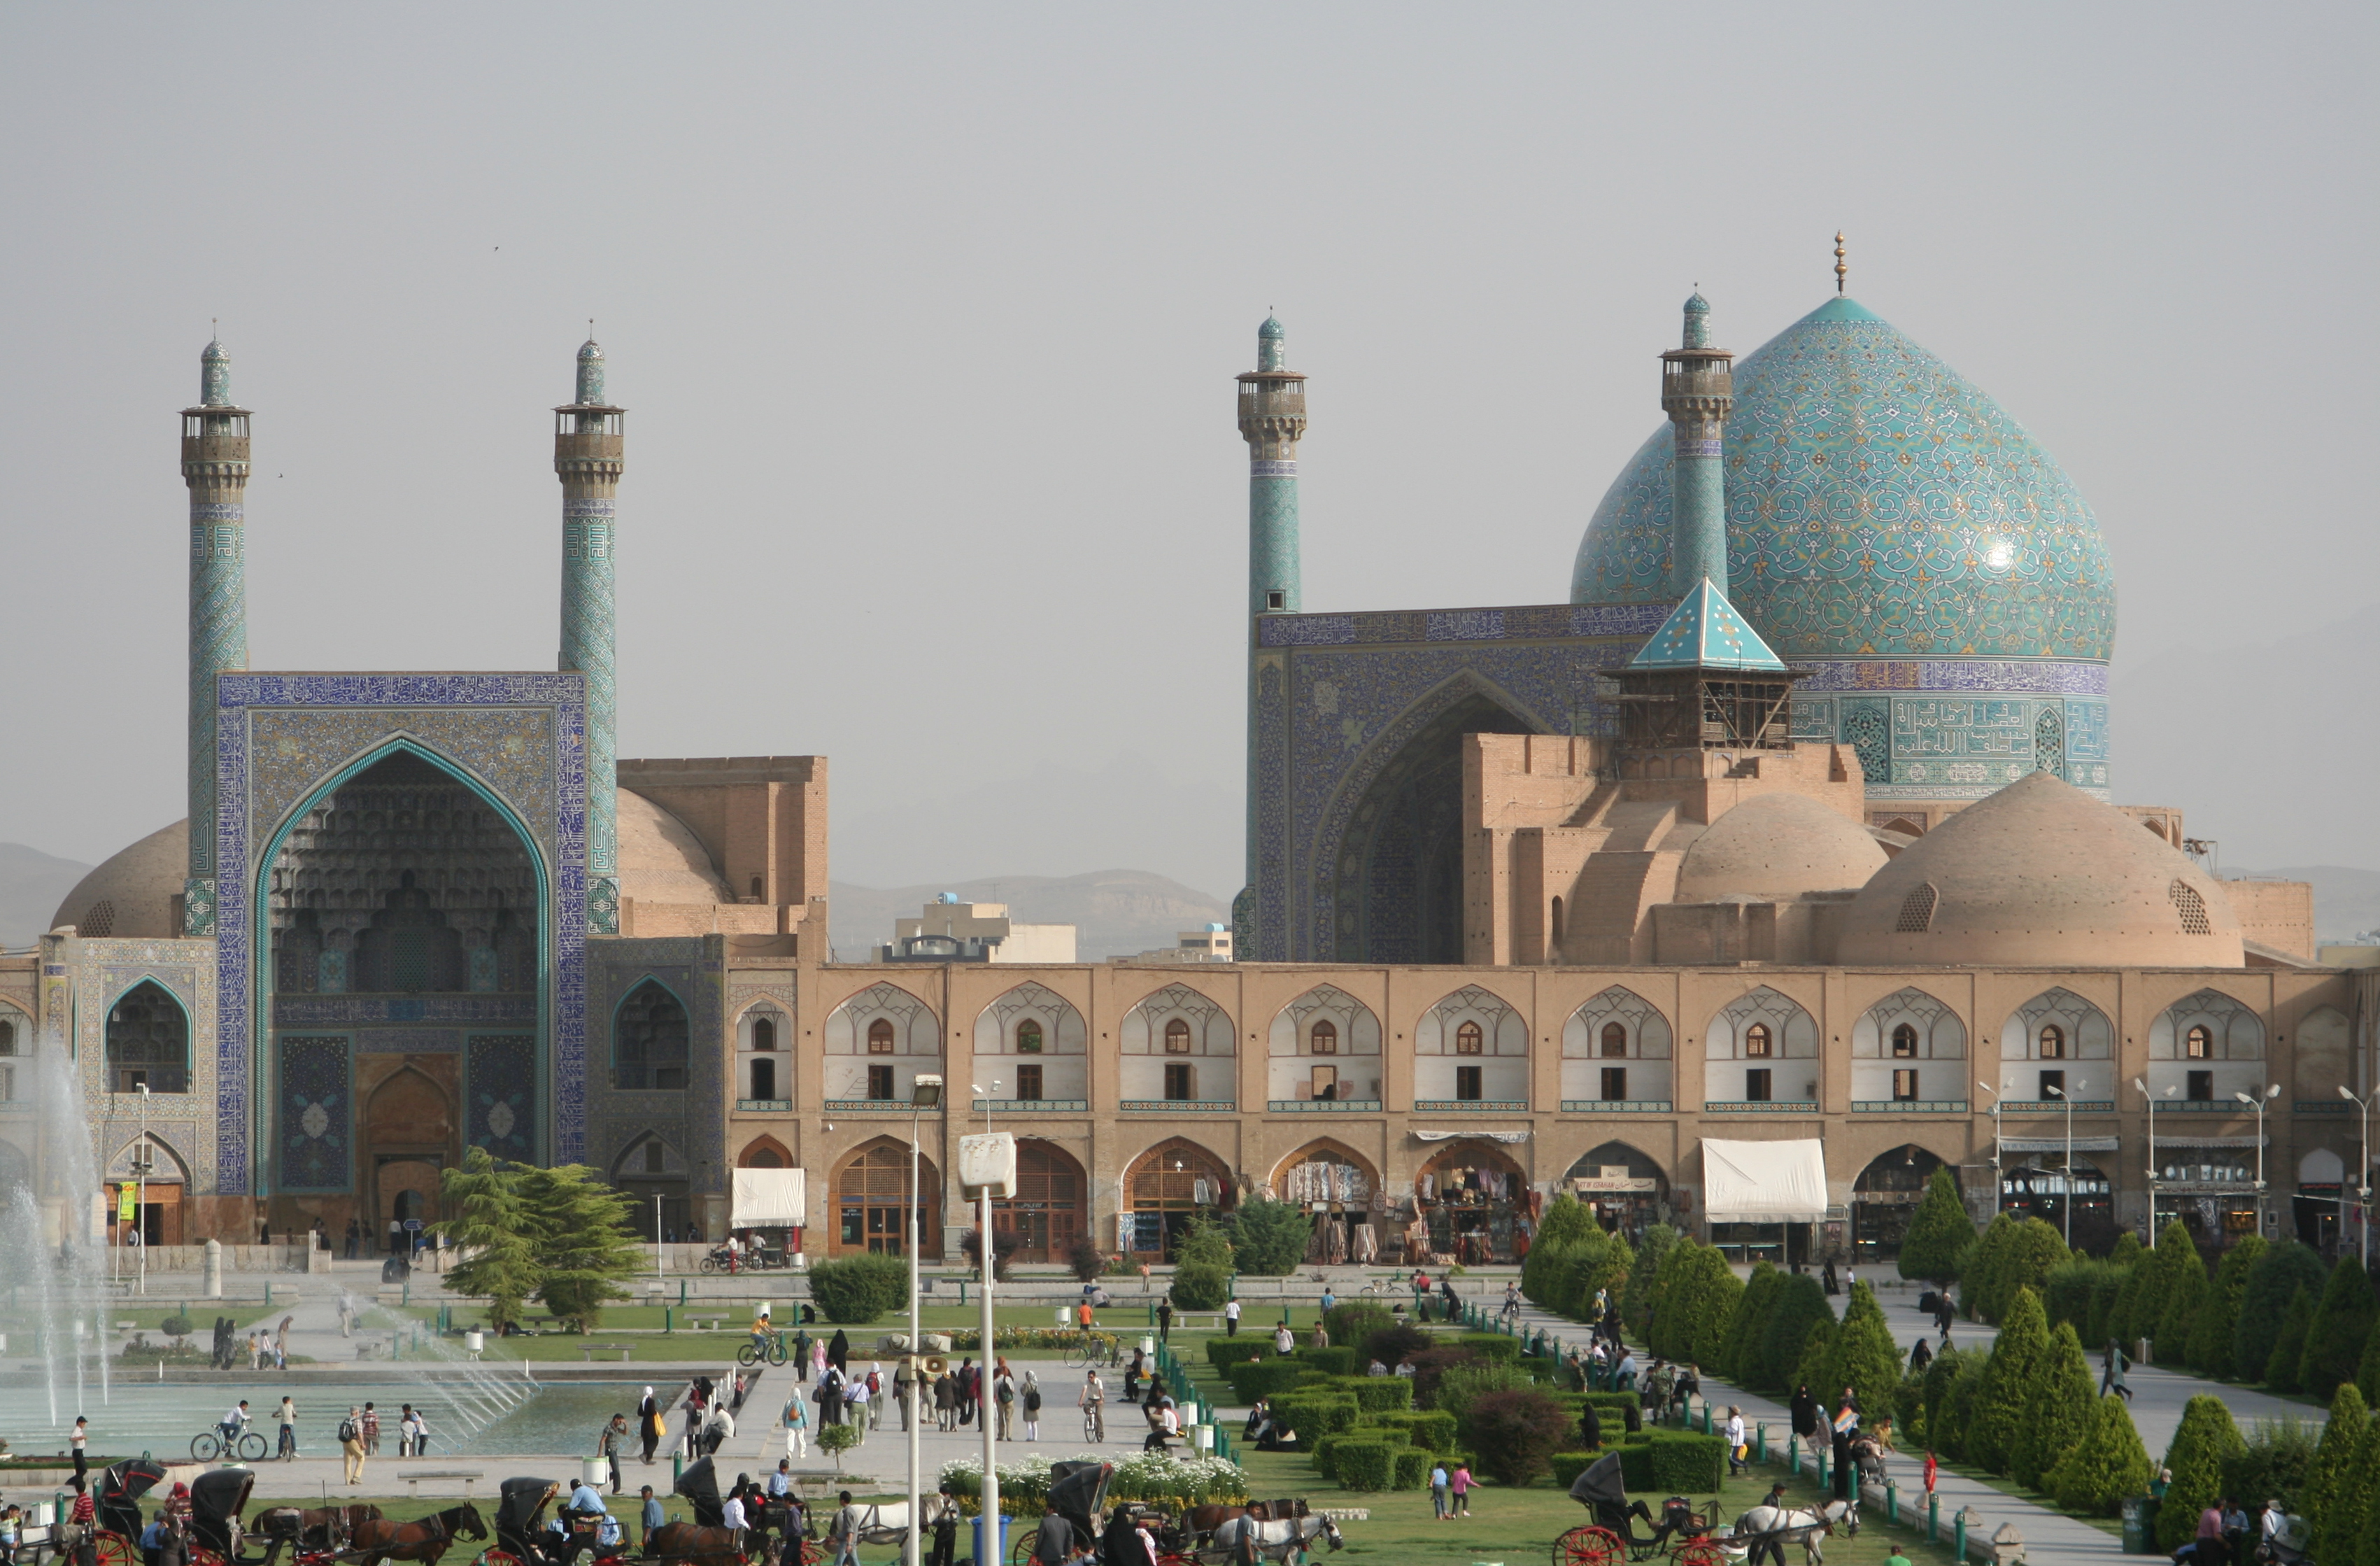 File:Isfahan Royal Mosque general.JPG - Wikimedia Commons